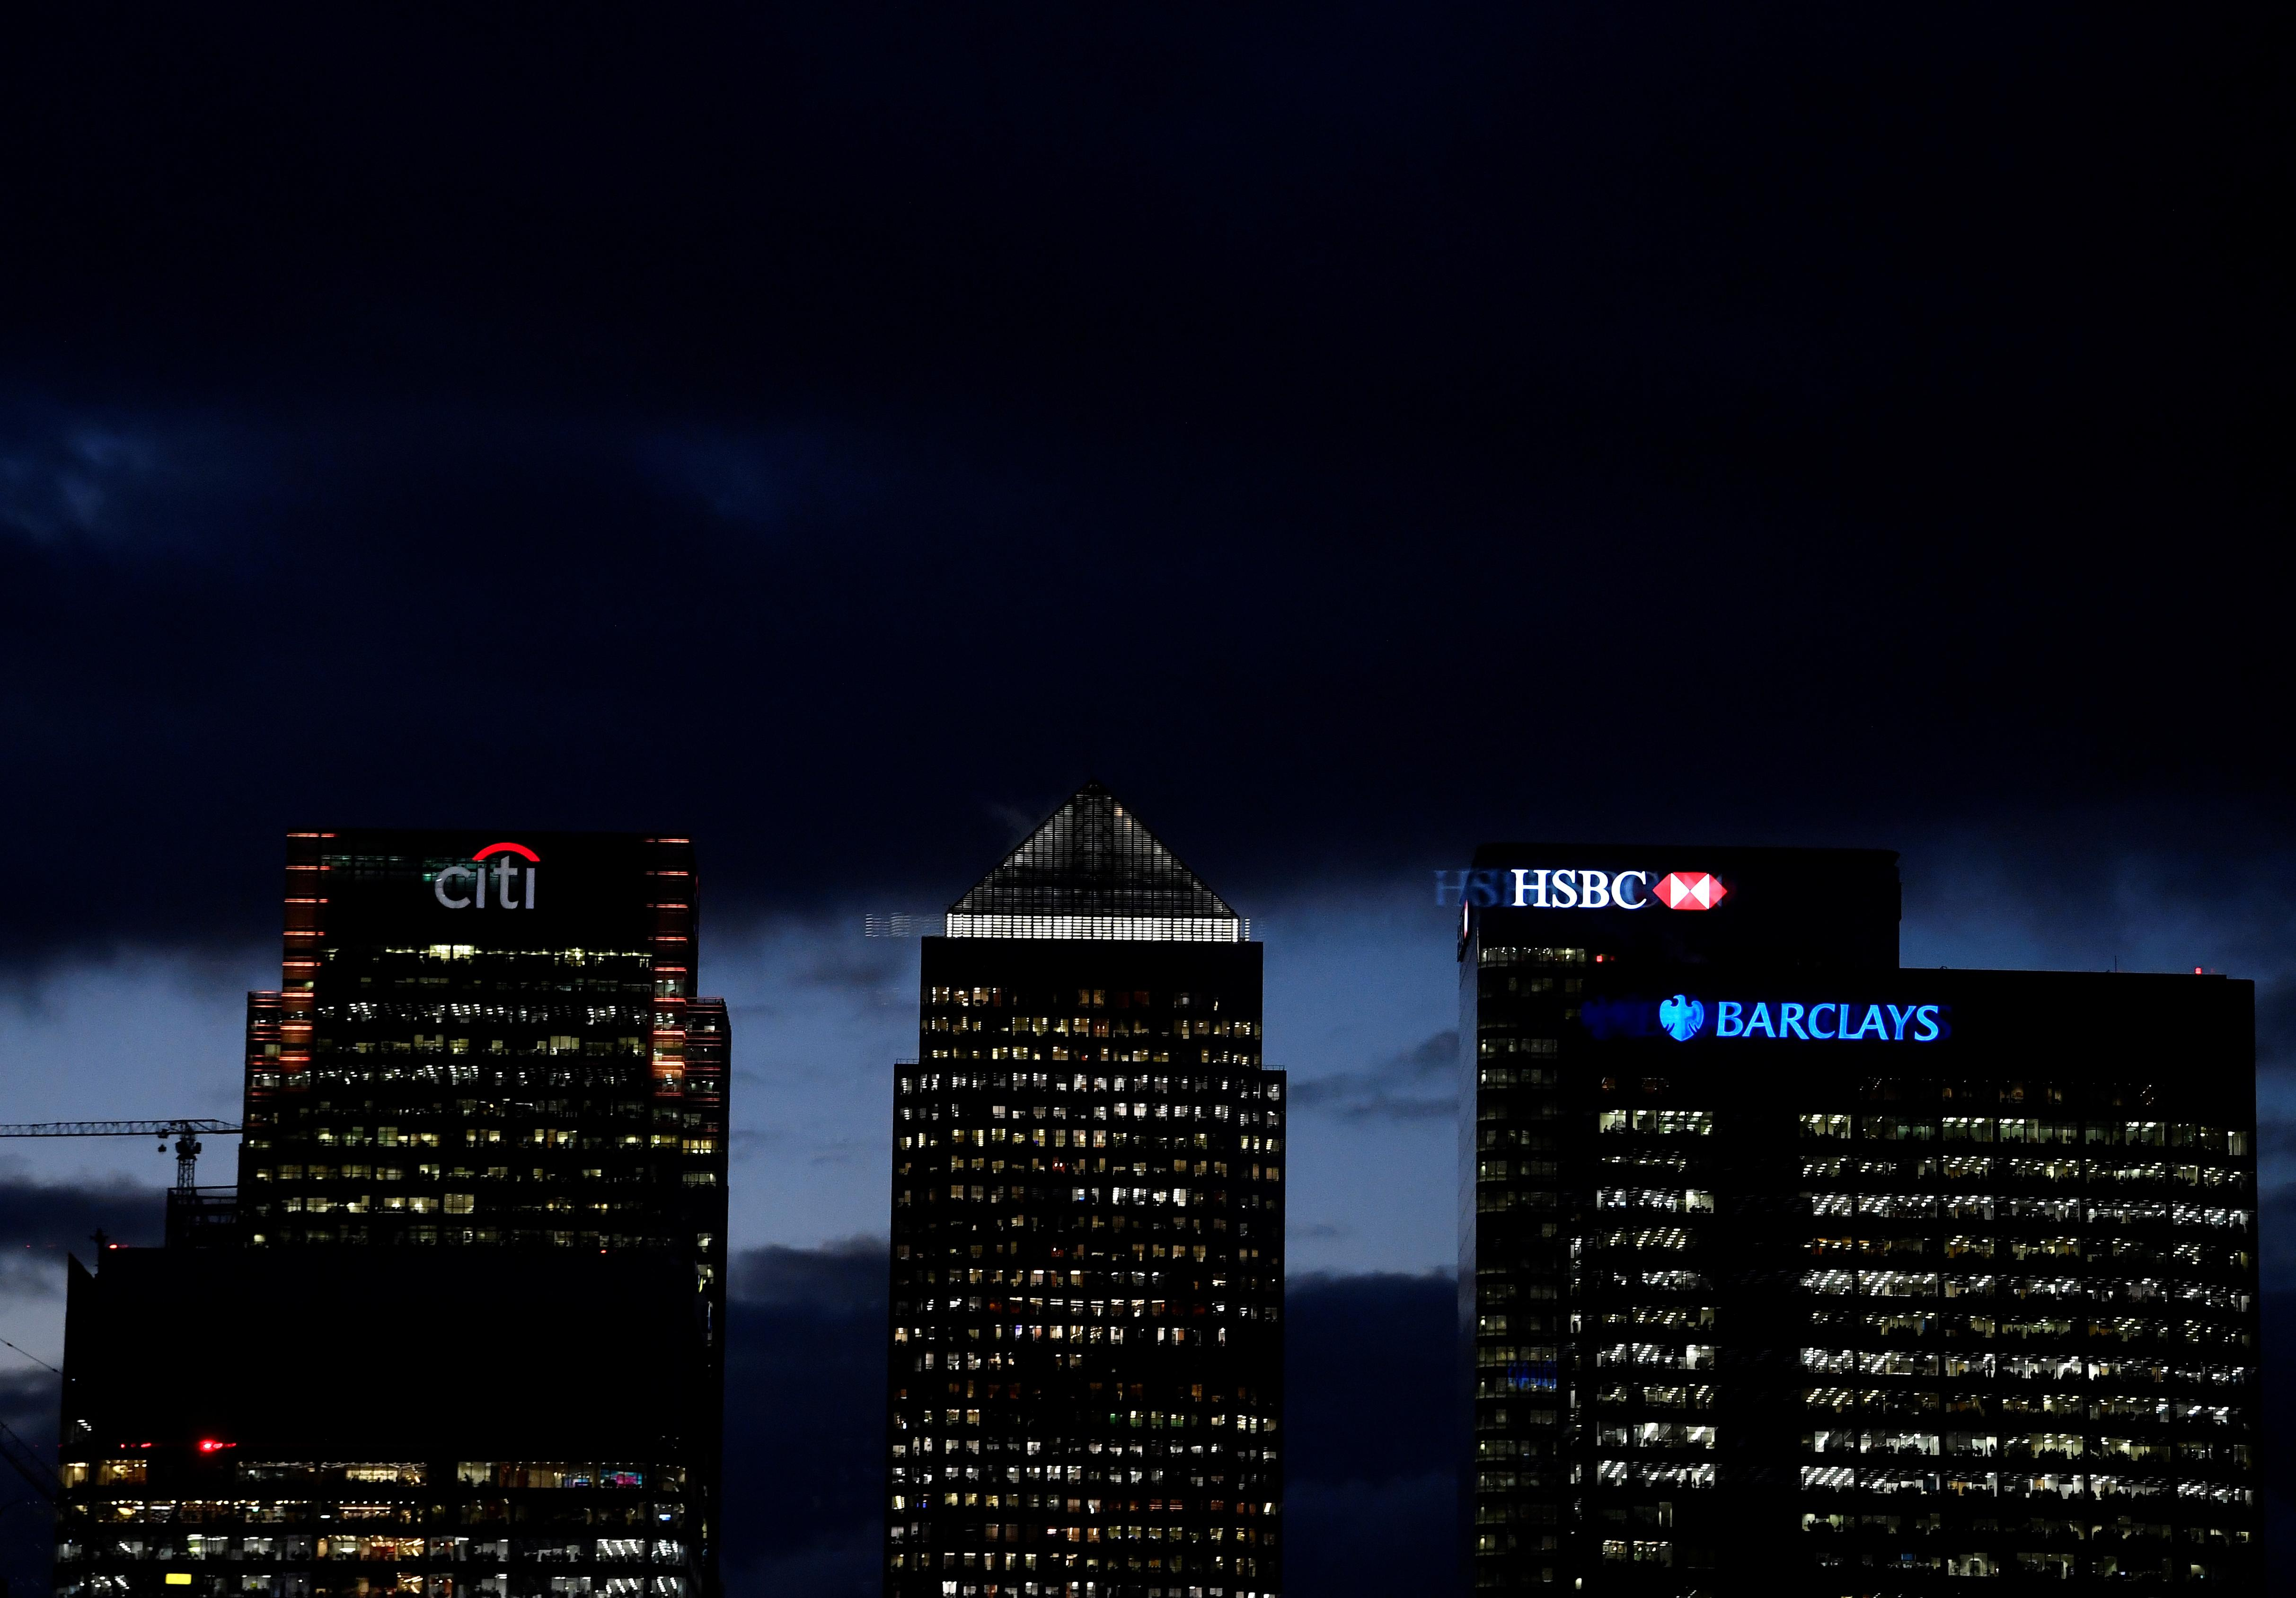 Banks have paid $36bn in fines since the 2008 financial crisis